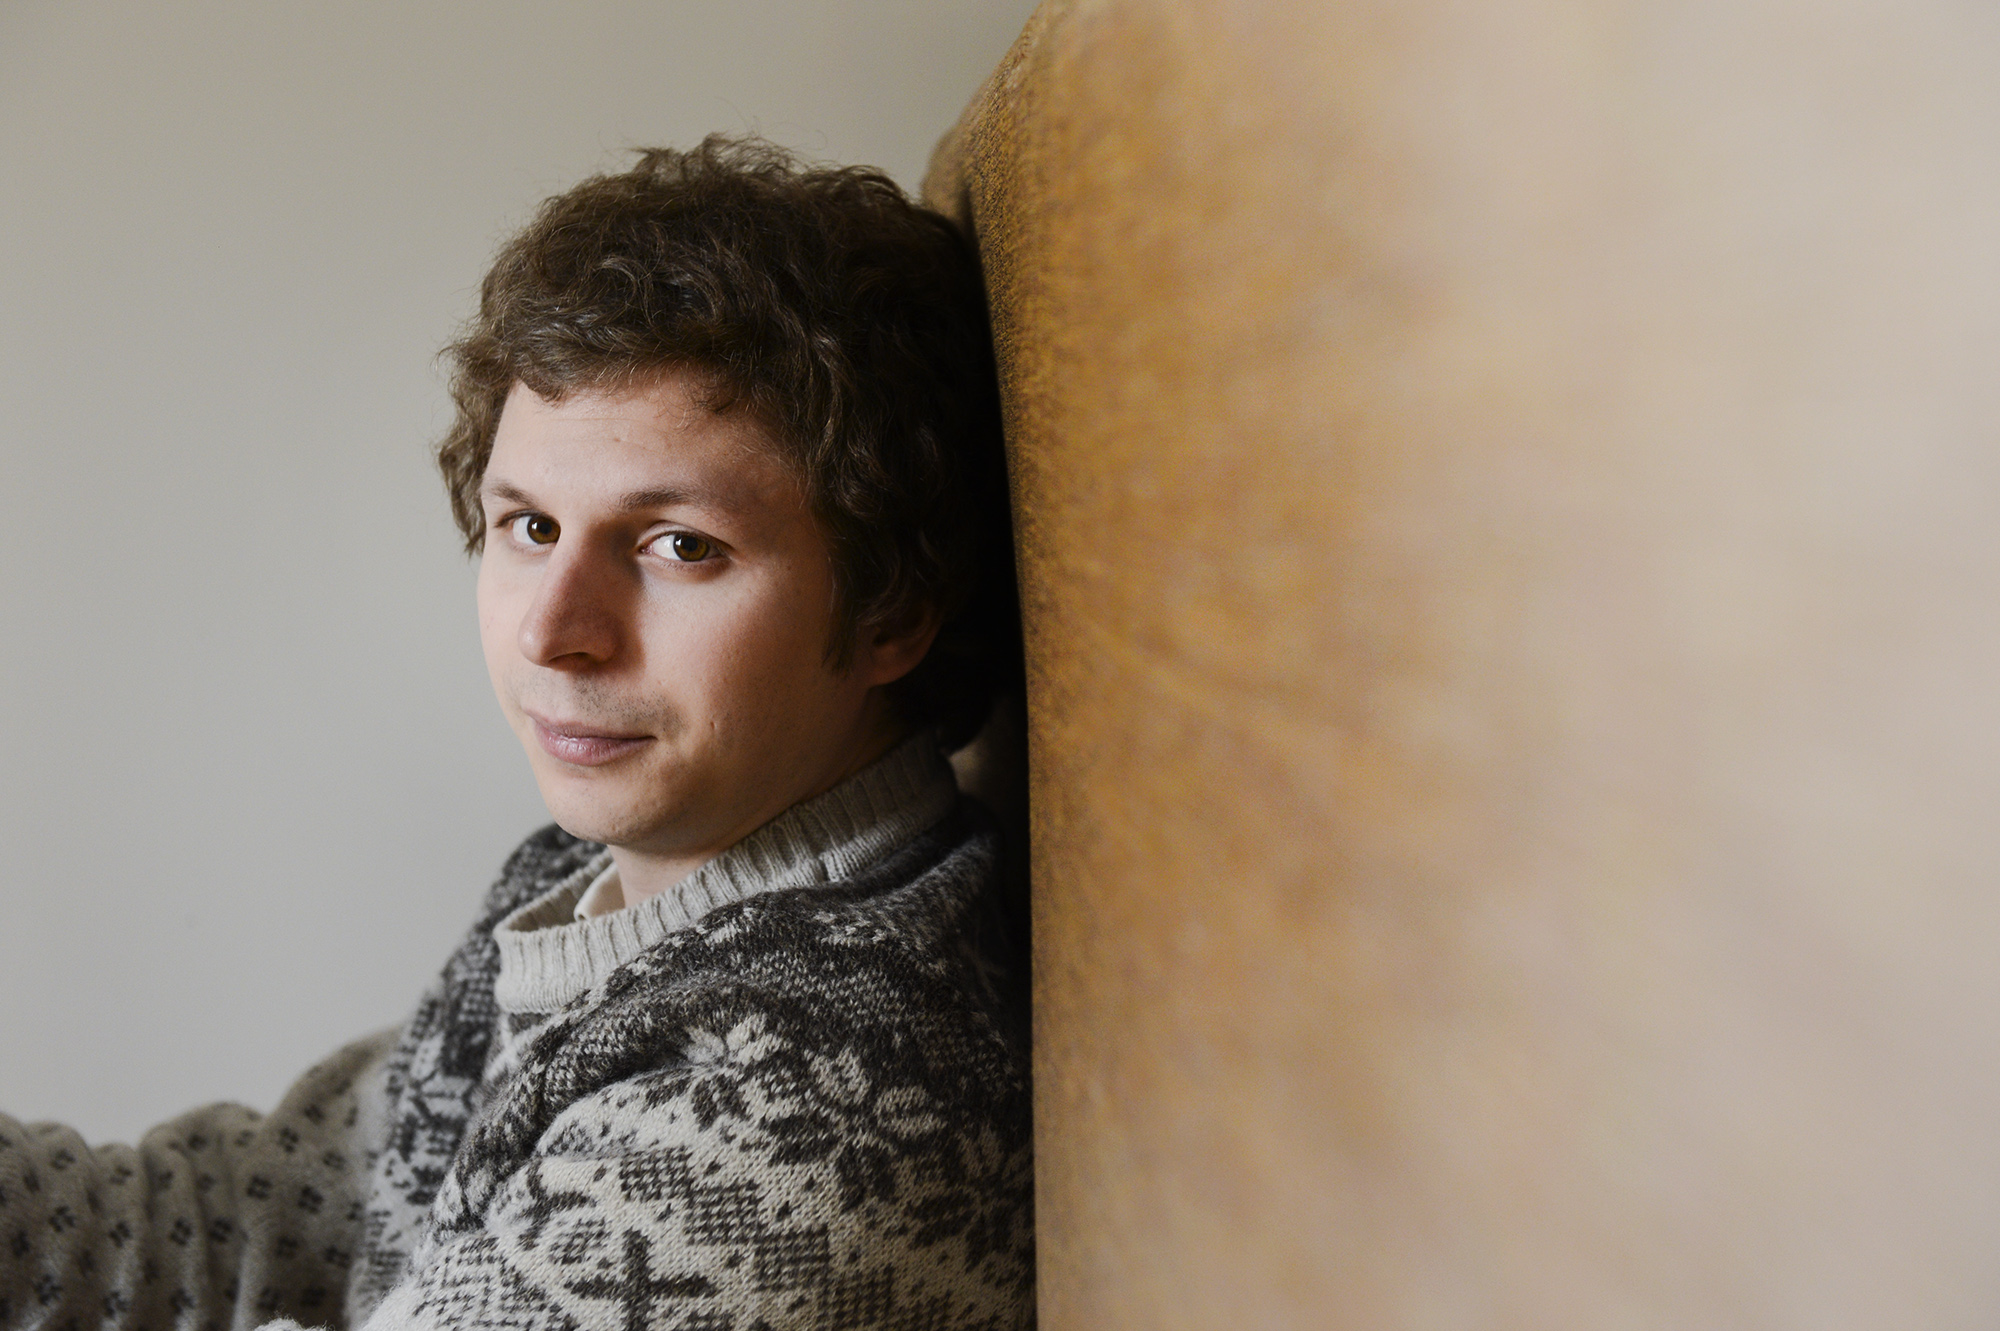 TORONTO, ON - APRIL 25: Canadian actor, Michael Cera poses for a photo Thursday April 25, 2013 in Toronto while promoting the